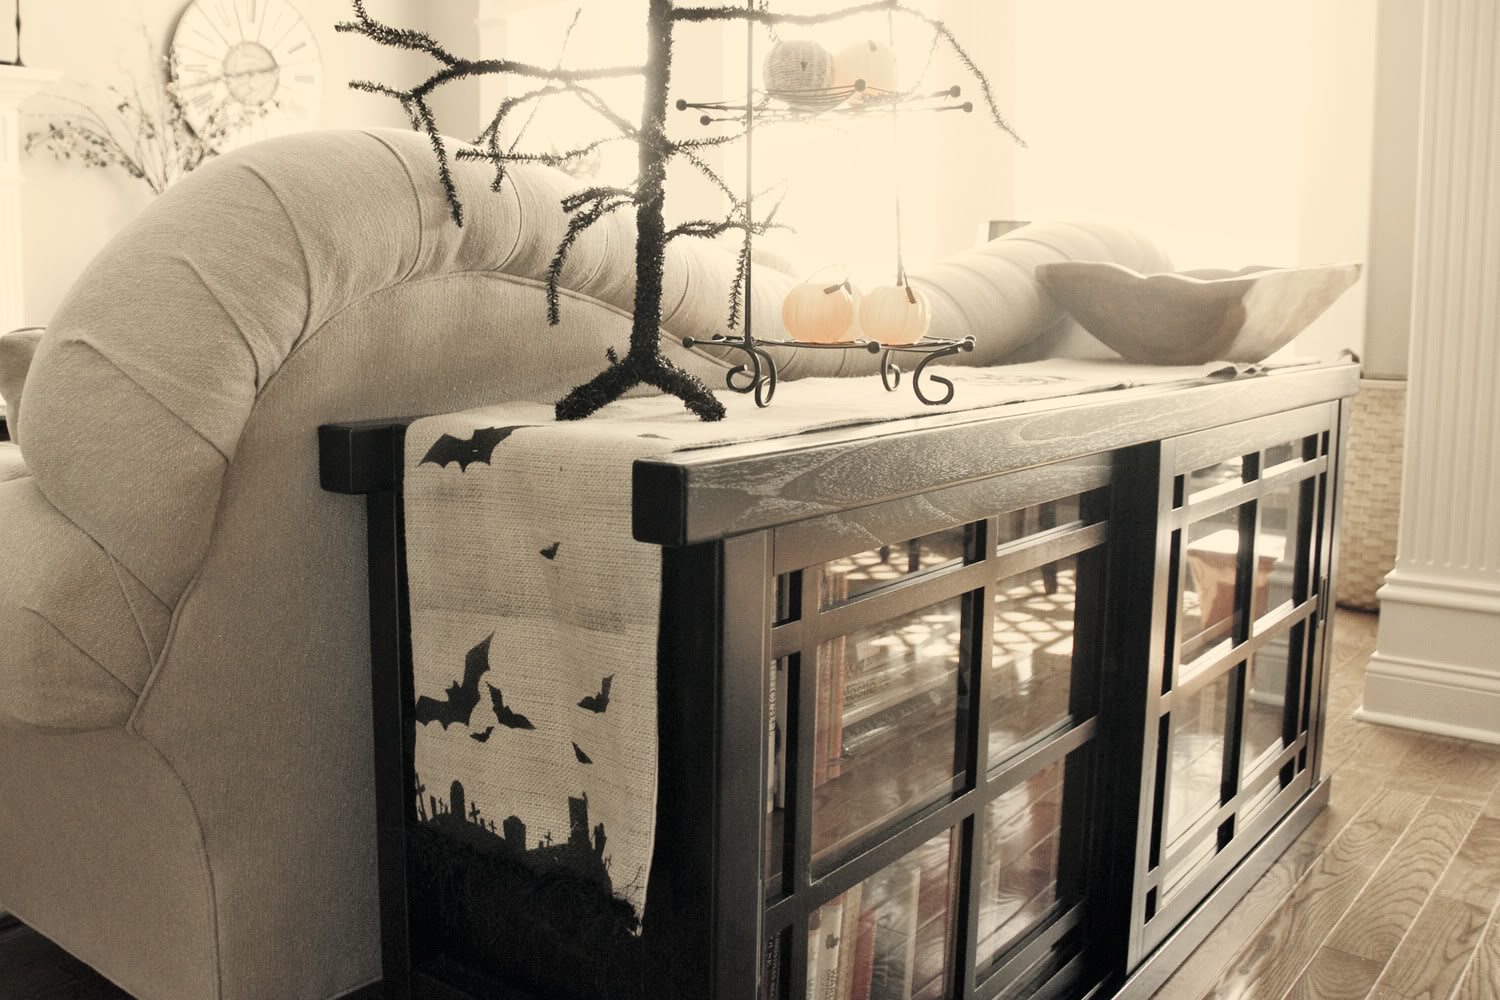 best-halloween-decorating-ideas-indoor-with-black-glass-cup-board-combined-dark-dry-tree-also-unique-shape-bowl-combined-white-bats-fly-tufted-drapery-for-living-room-design-halloween-decorating-ideas.jpg